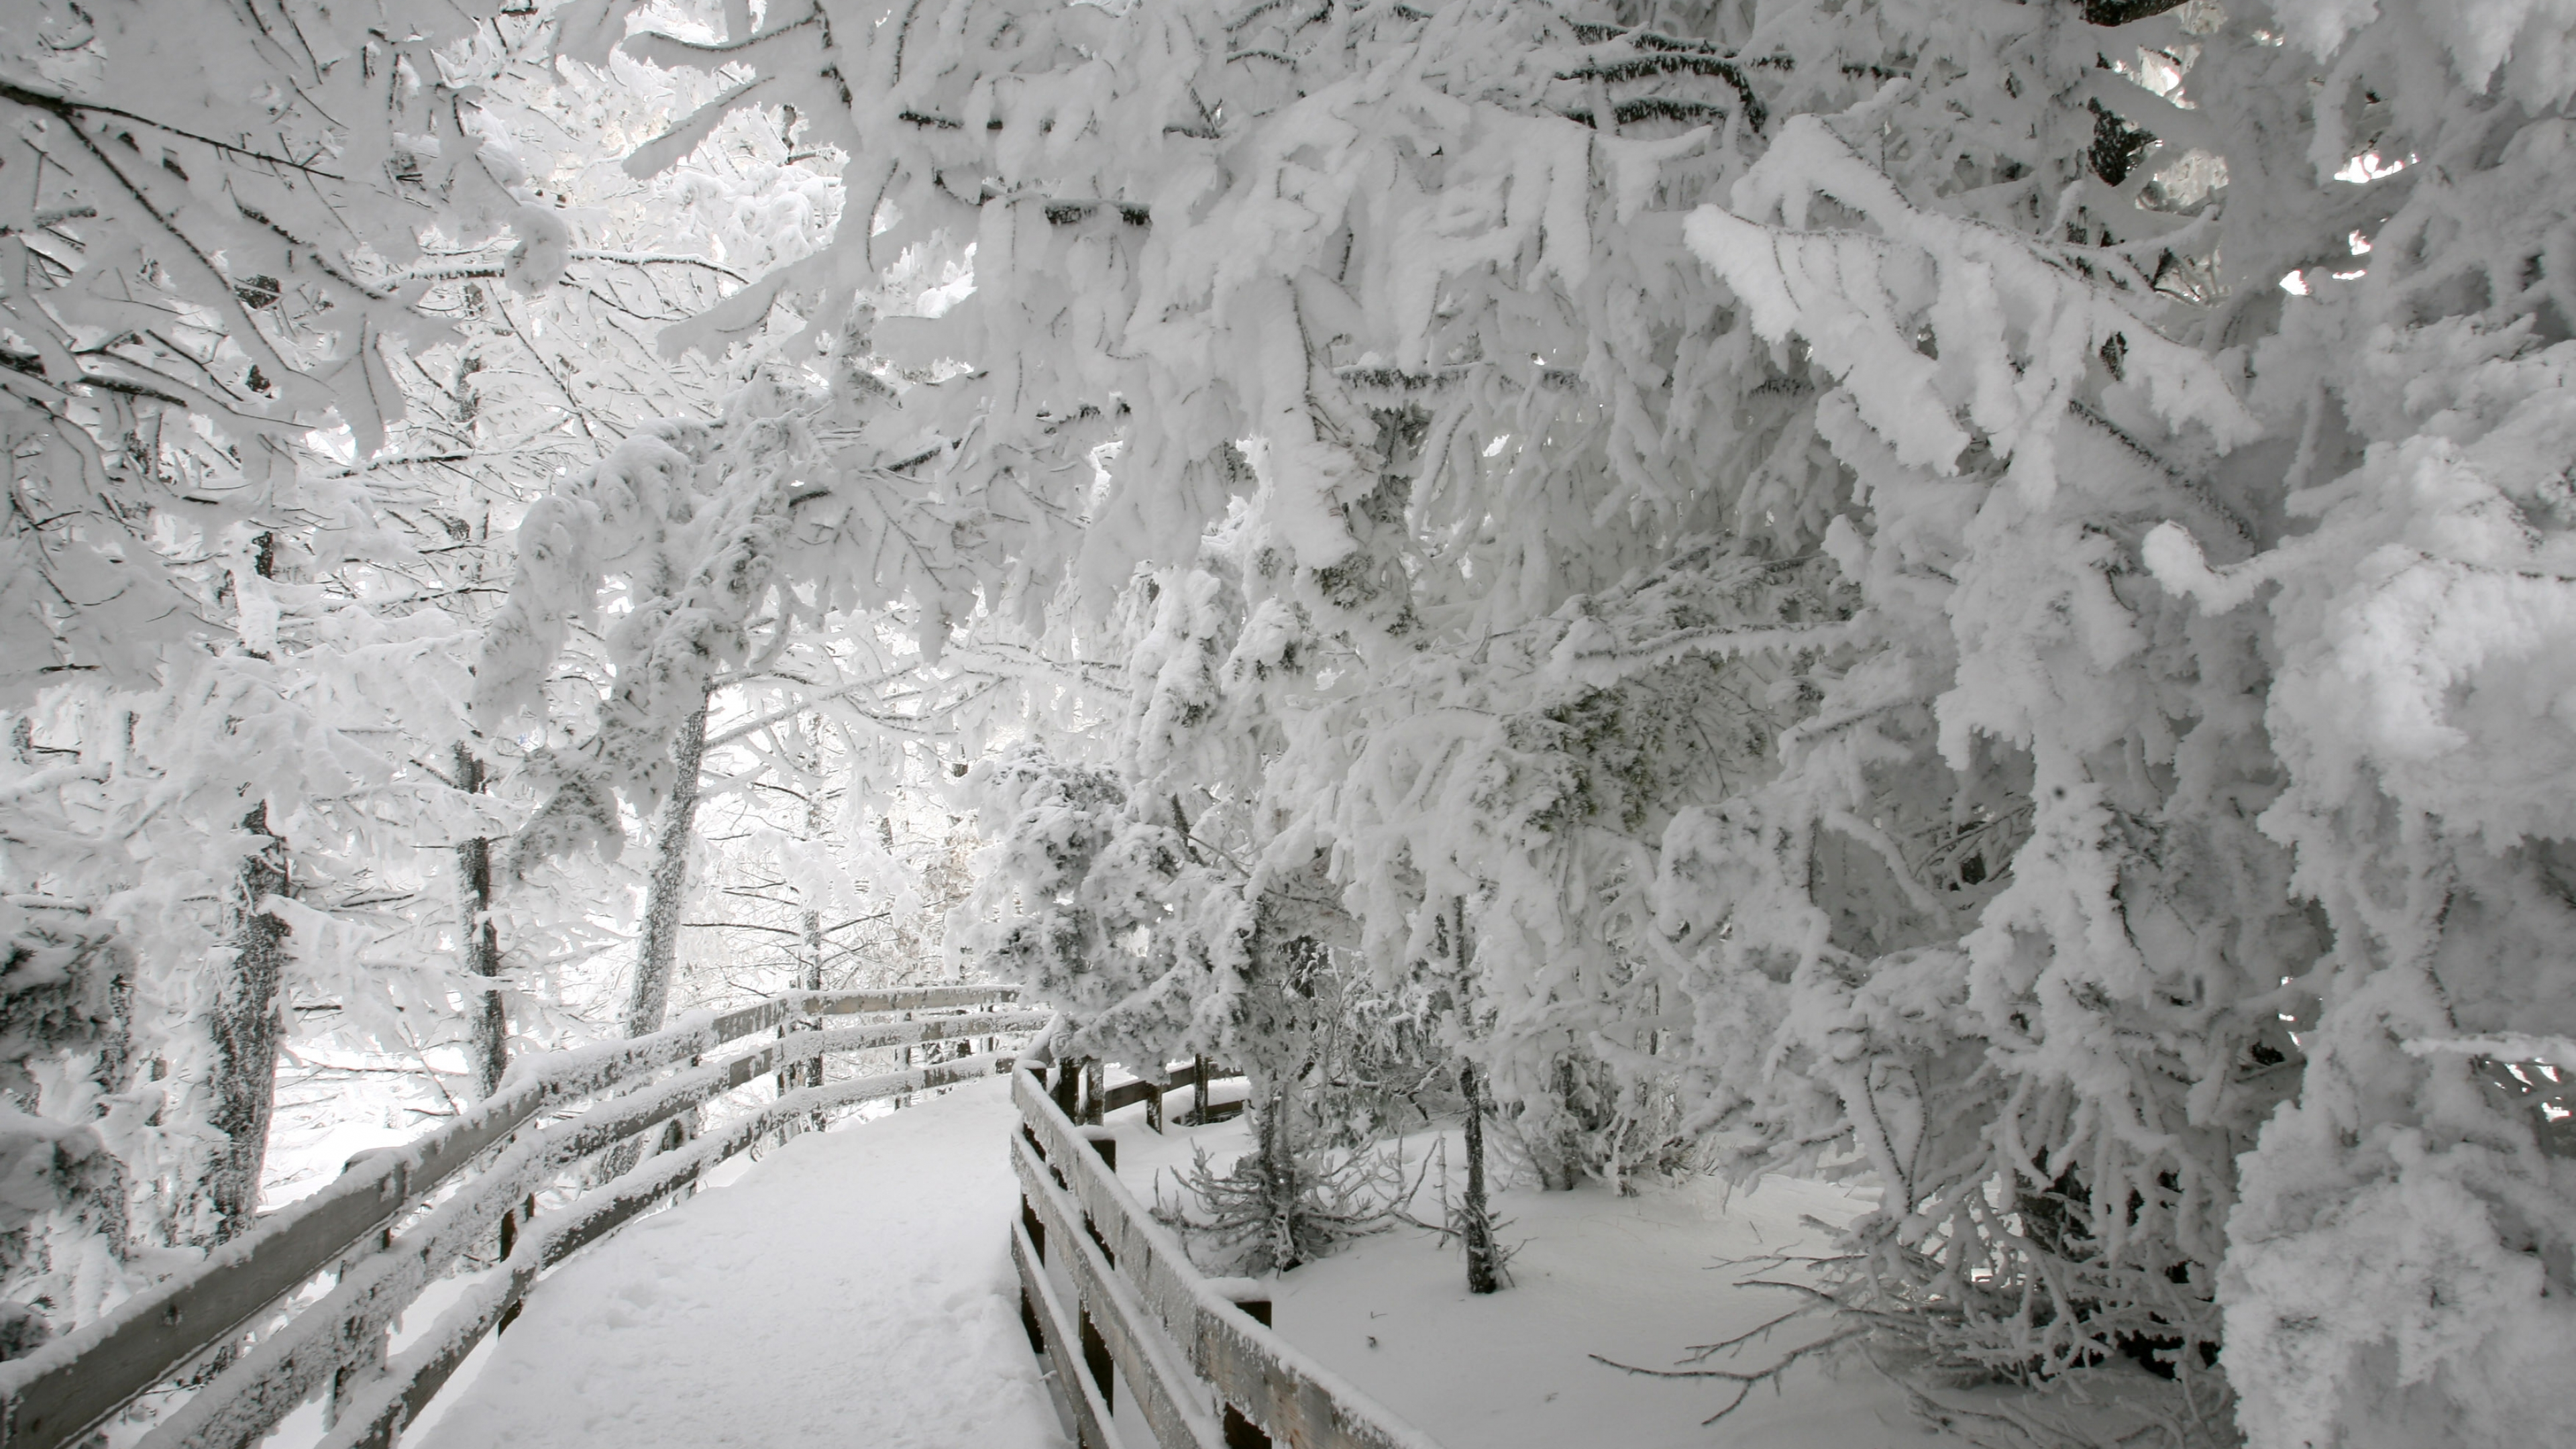 A snow covered boardwalk curves out of sight underneath heavily frosted trees